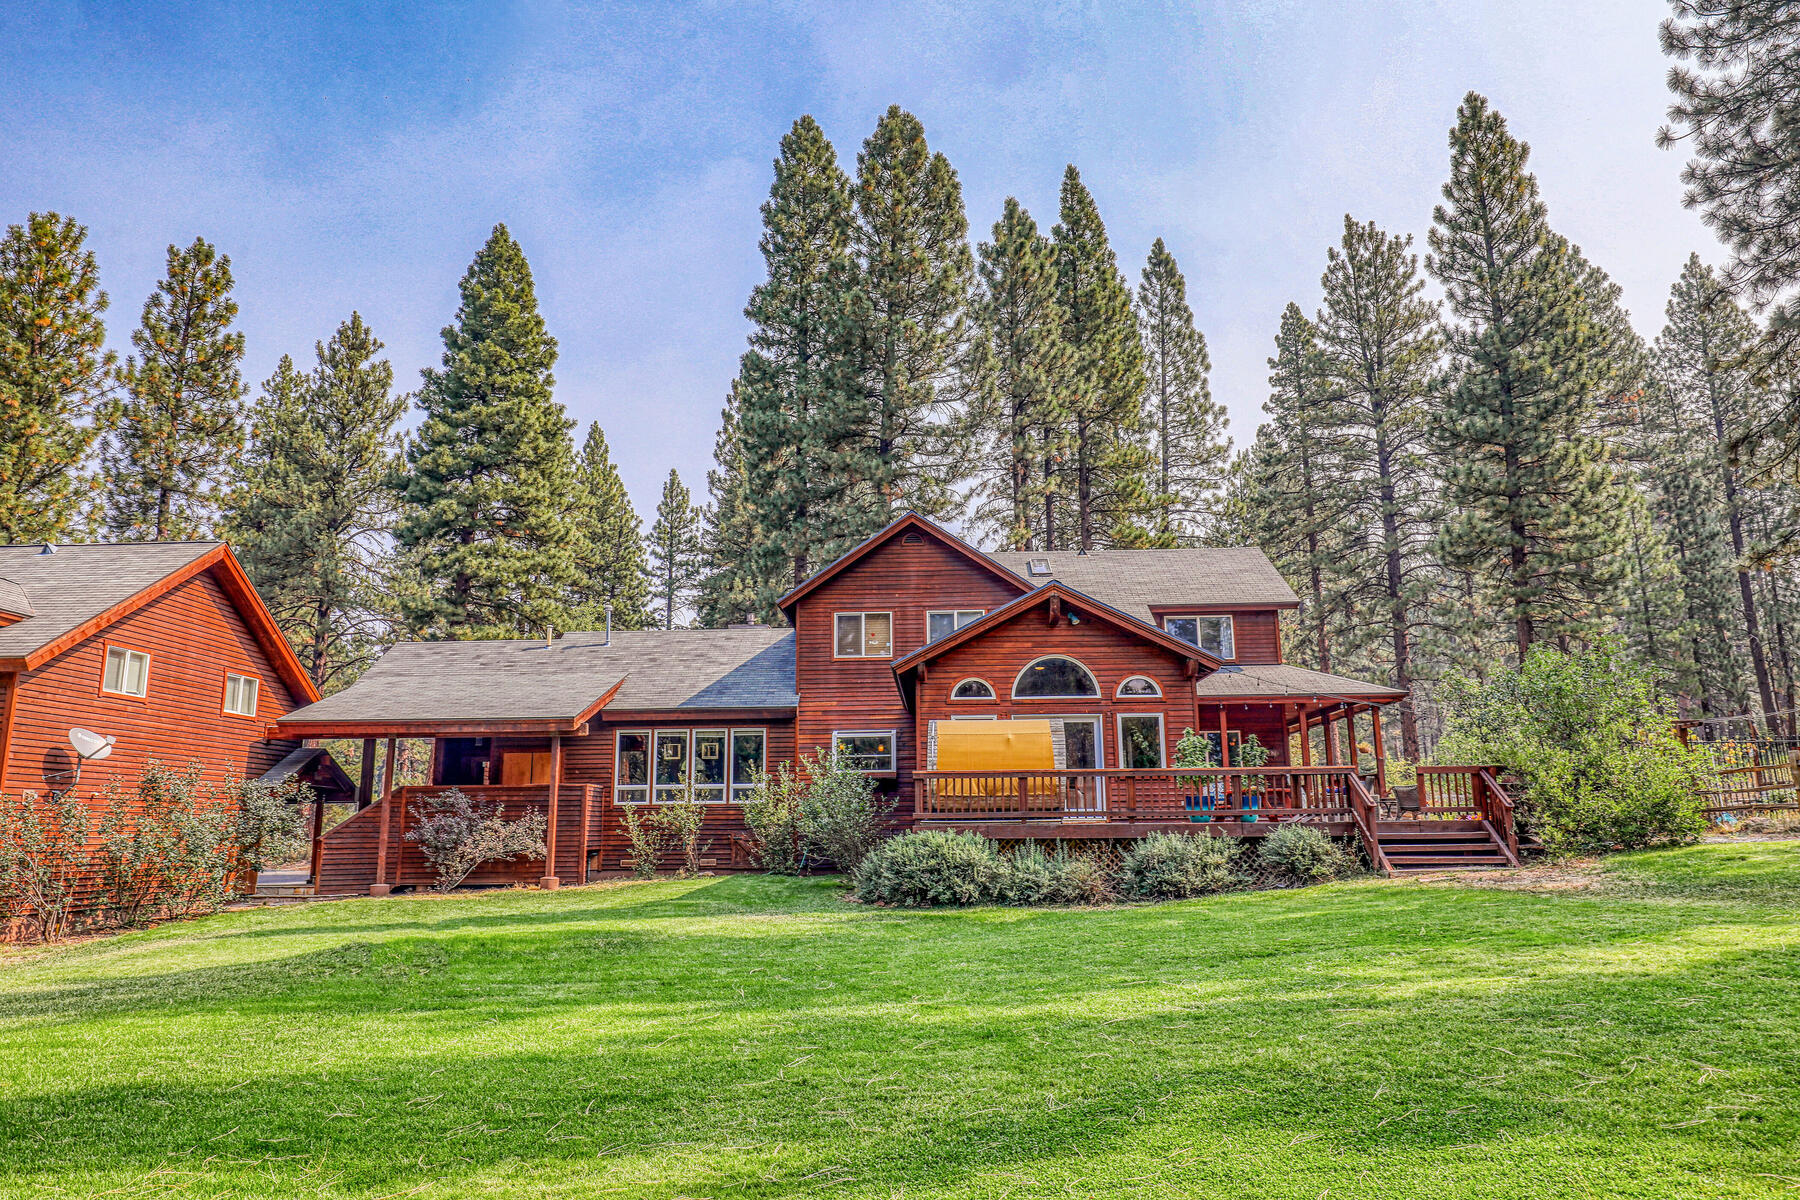 Property for Active at Best Kept Secret In Truckee Is Out 10915 Royal Crest Drive Truckee, California 96161 United States